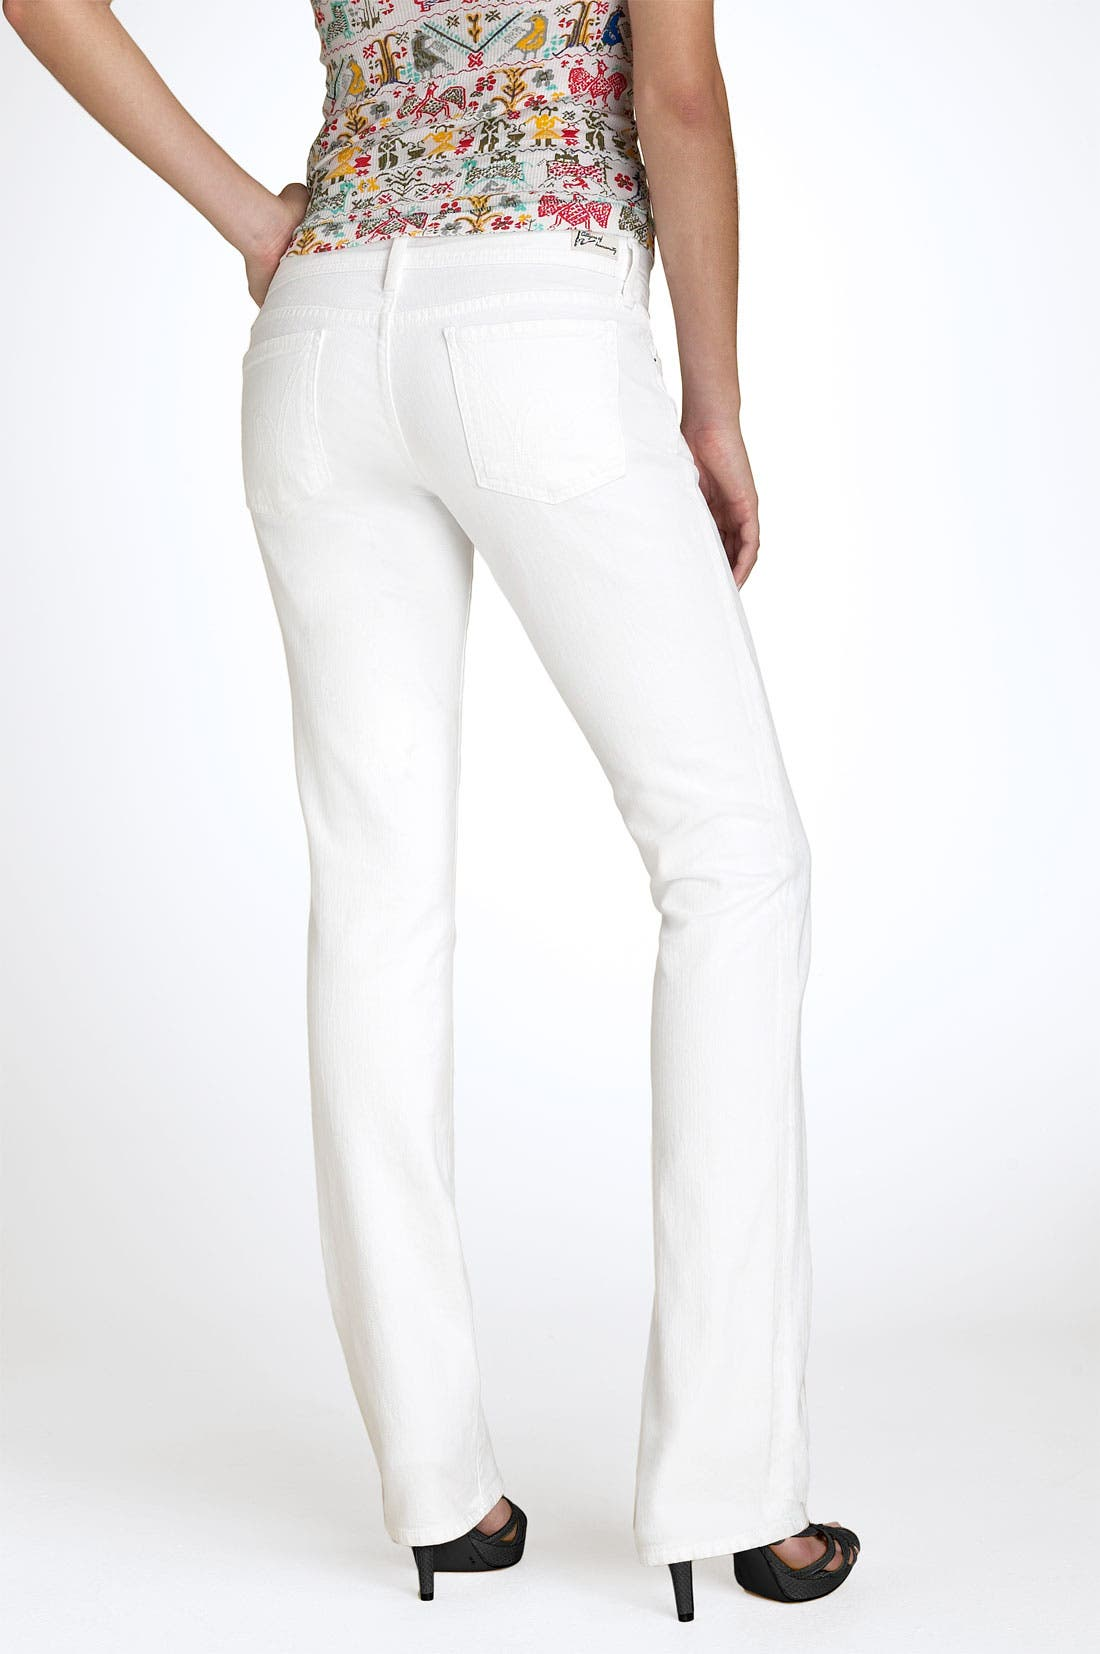 Alternate Image 1 Selected - Citizens of Humanity 'Ava' Straight Leg Stretch Jeans (Santorini White Wash)